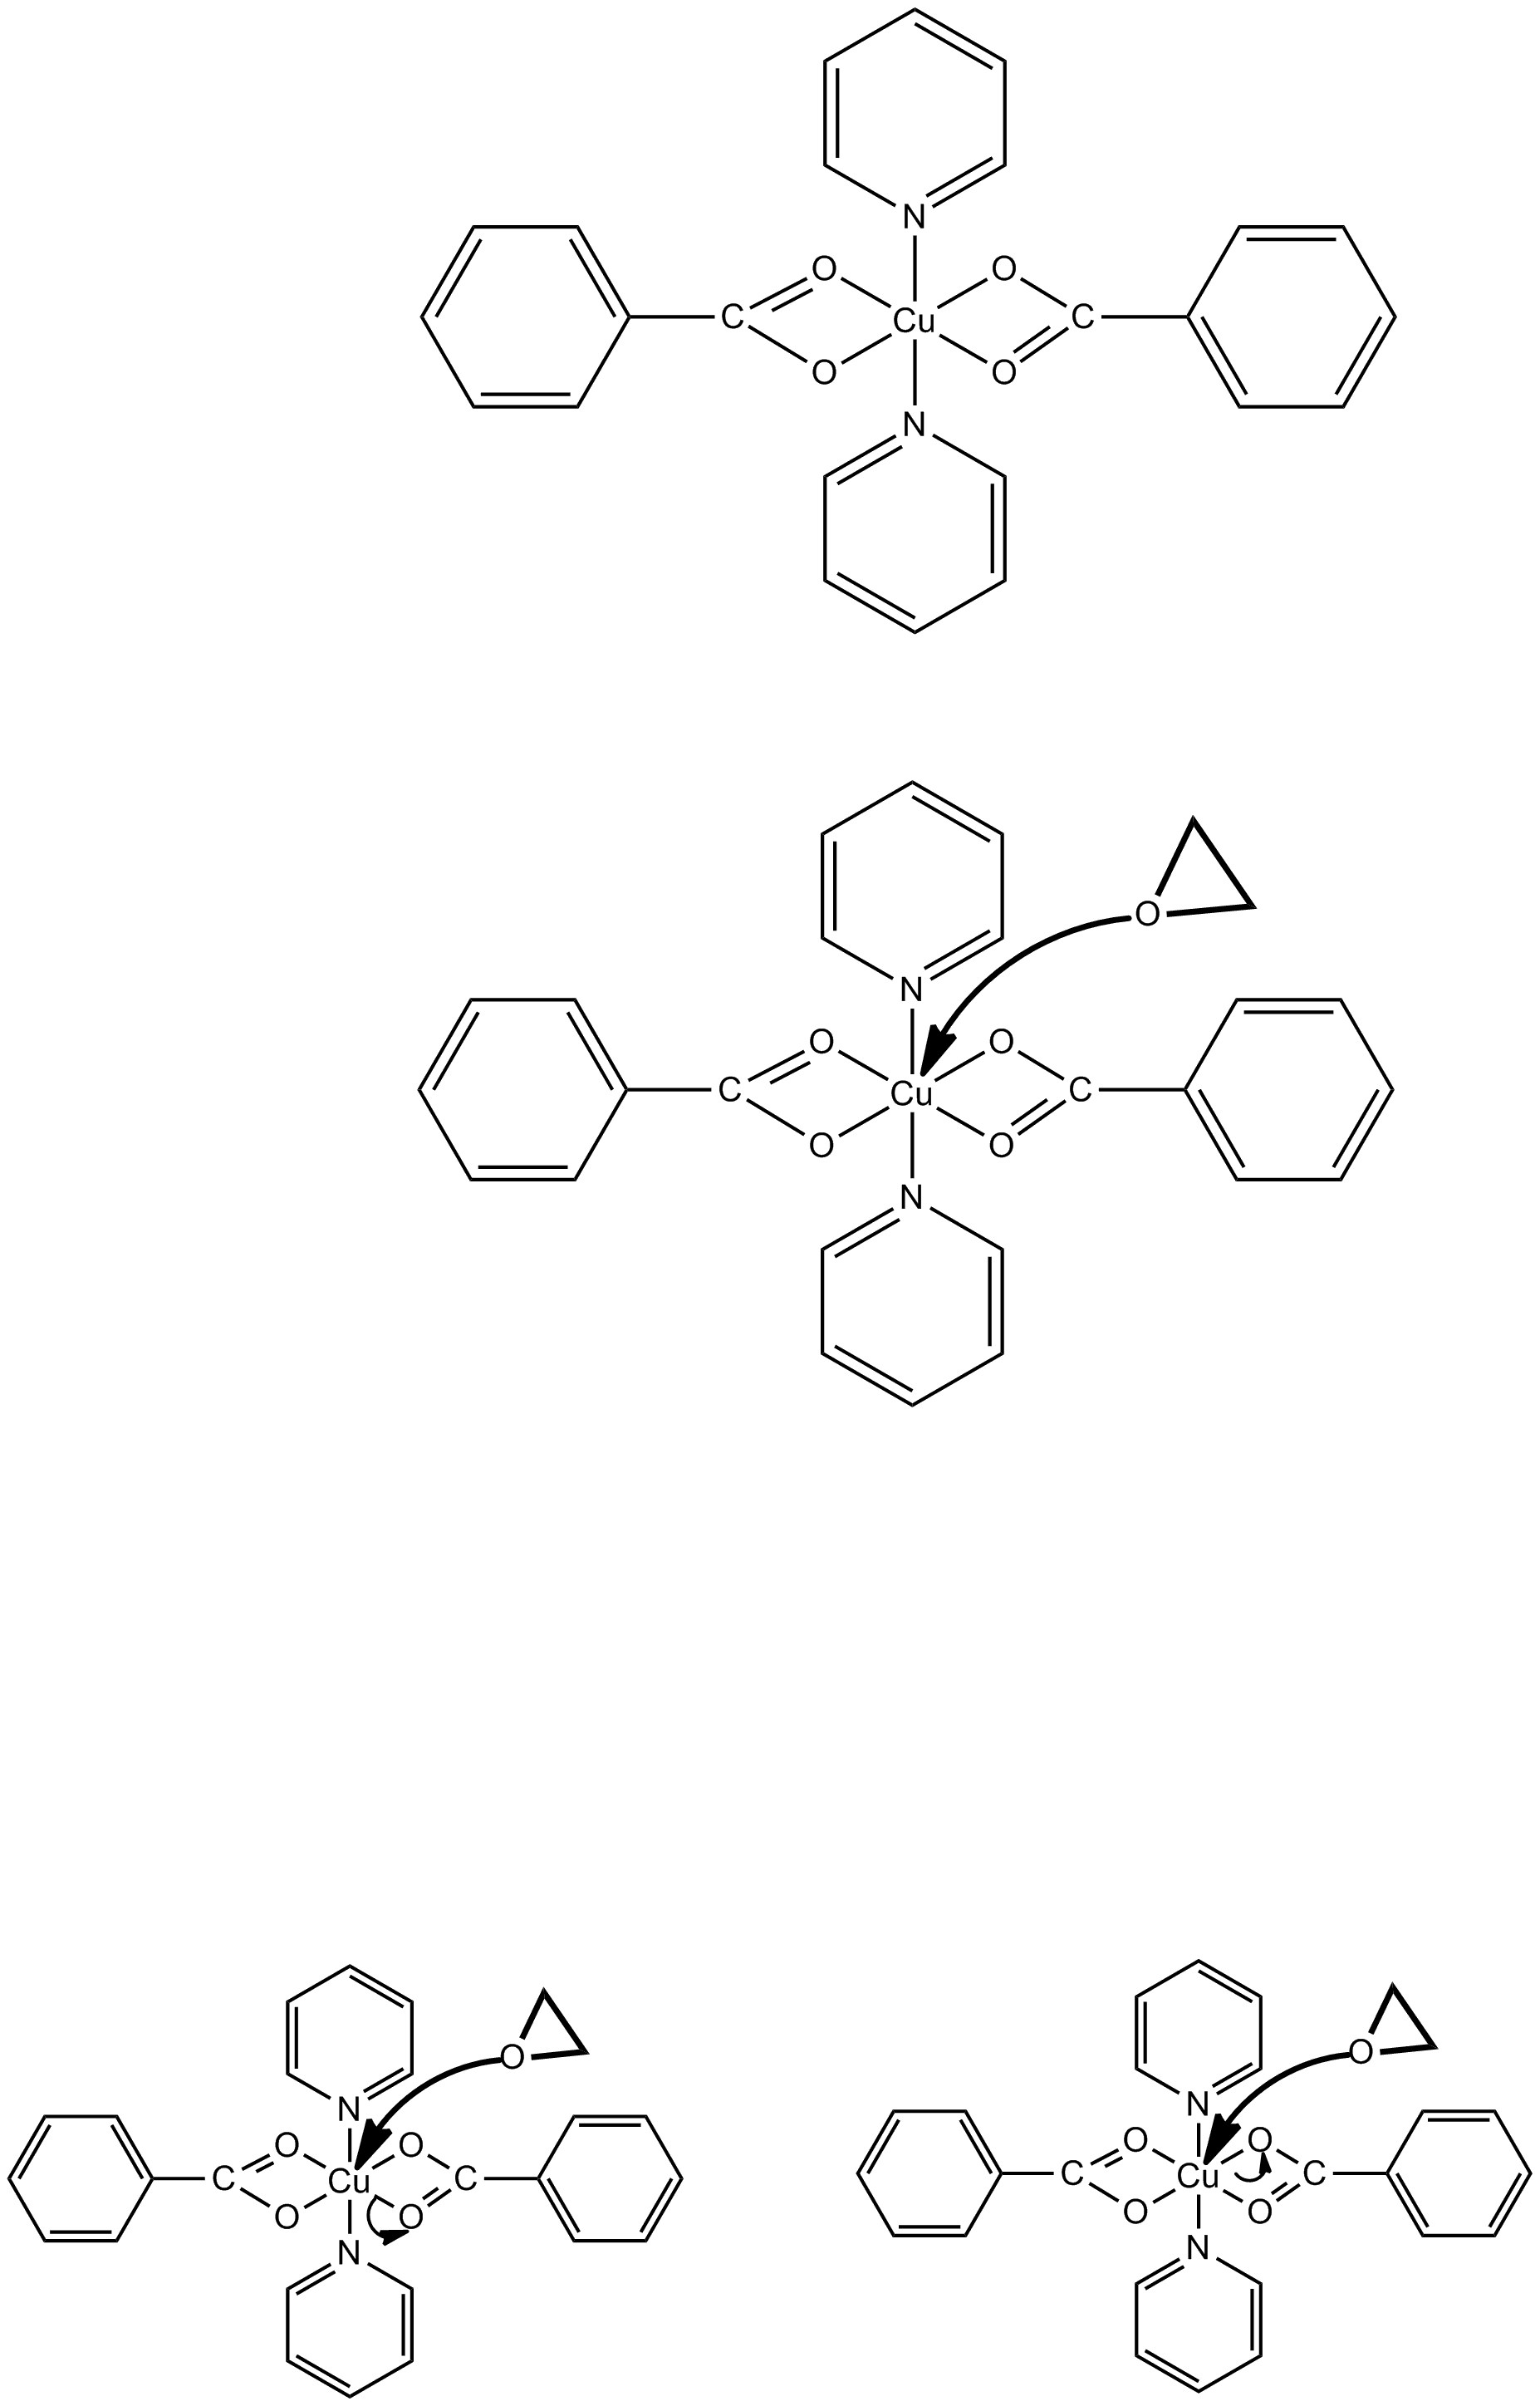 217 questions with answers in Coordination Chemistry and